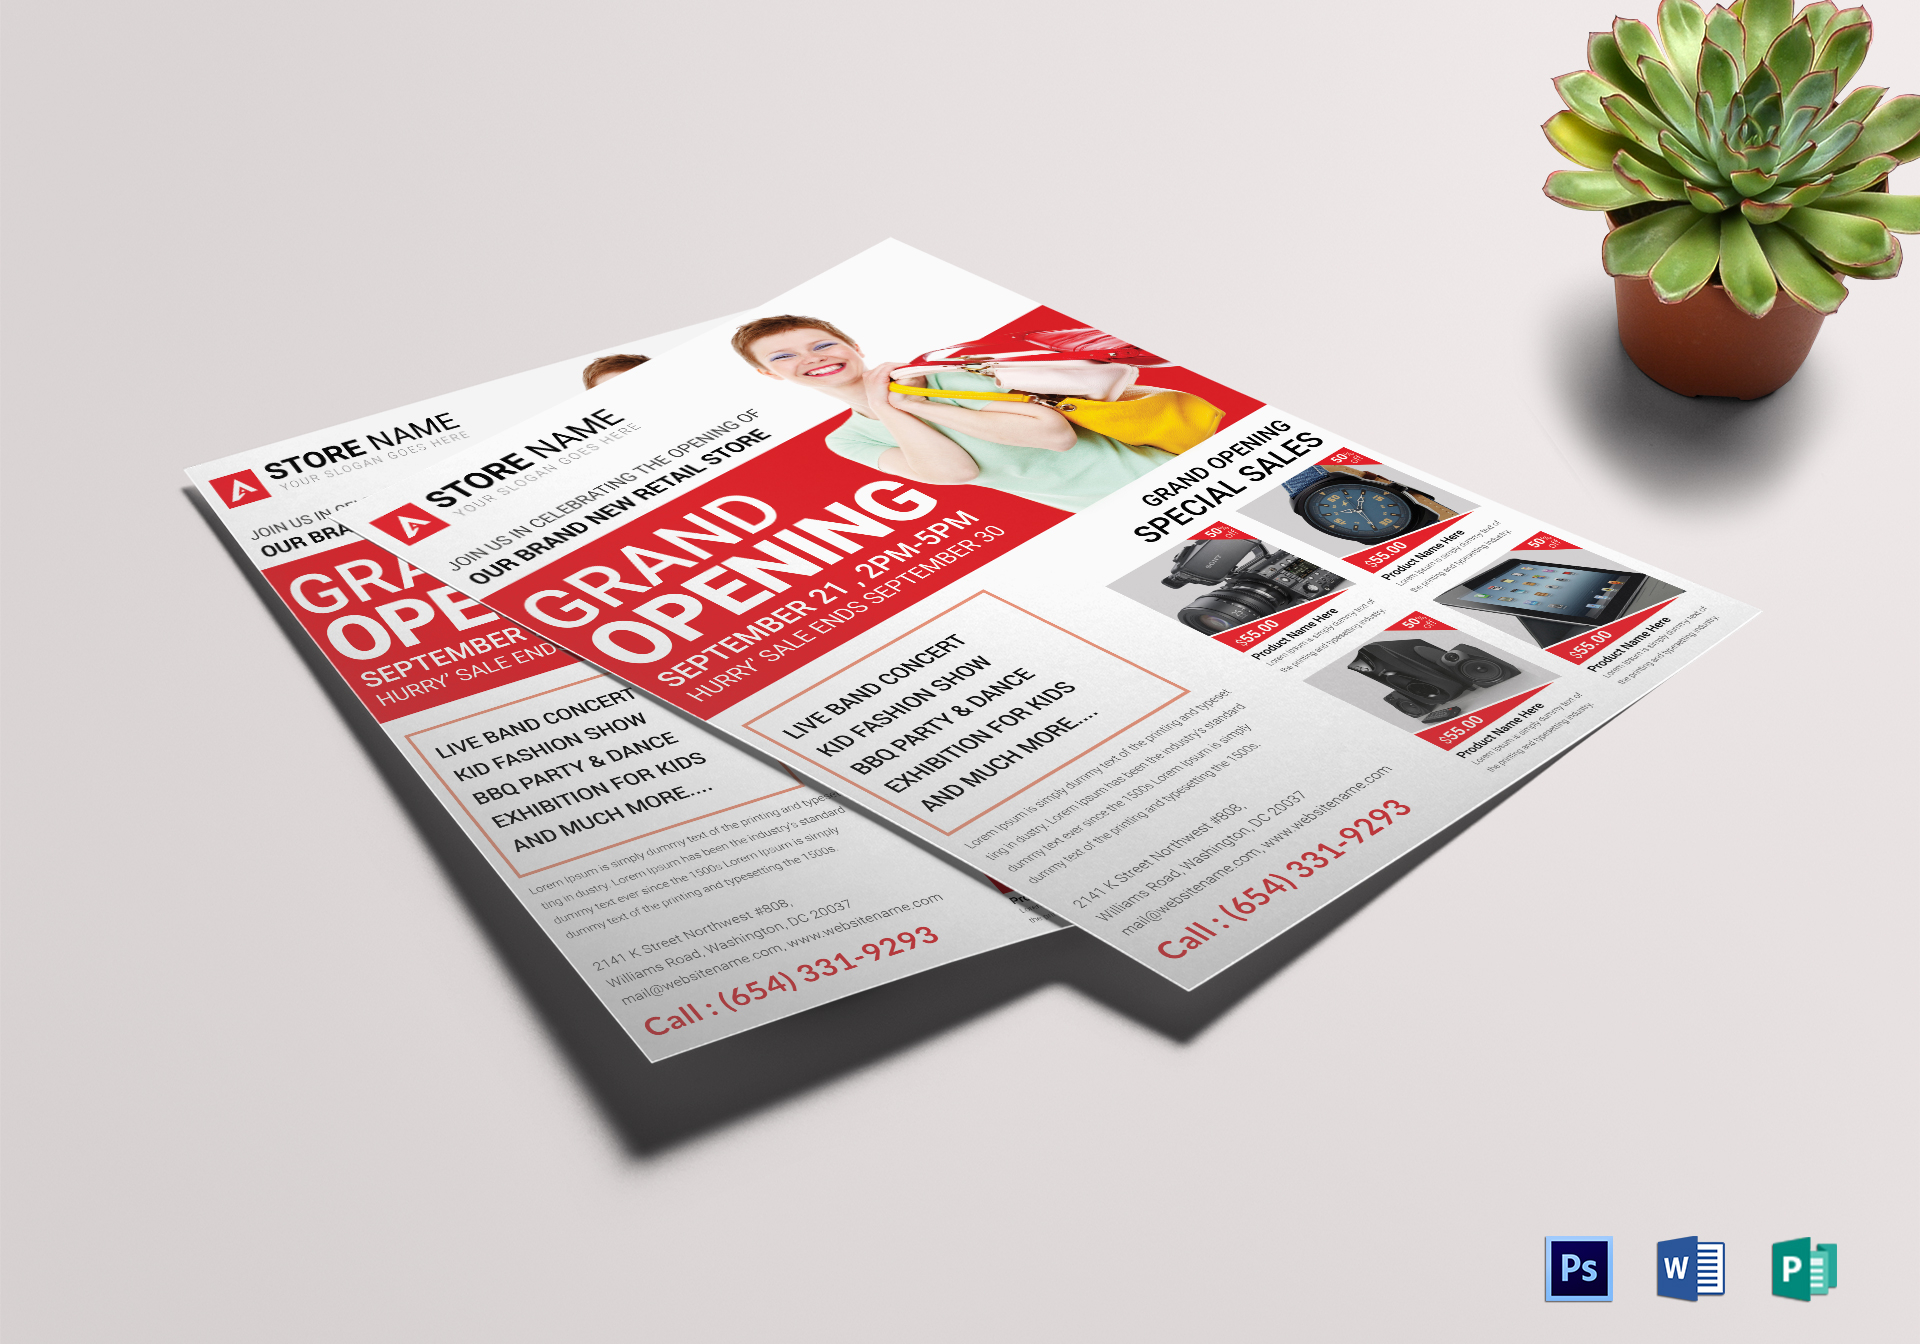 Store Grand Opening Flyer Design Template In Word Psd Publisher